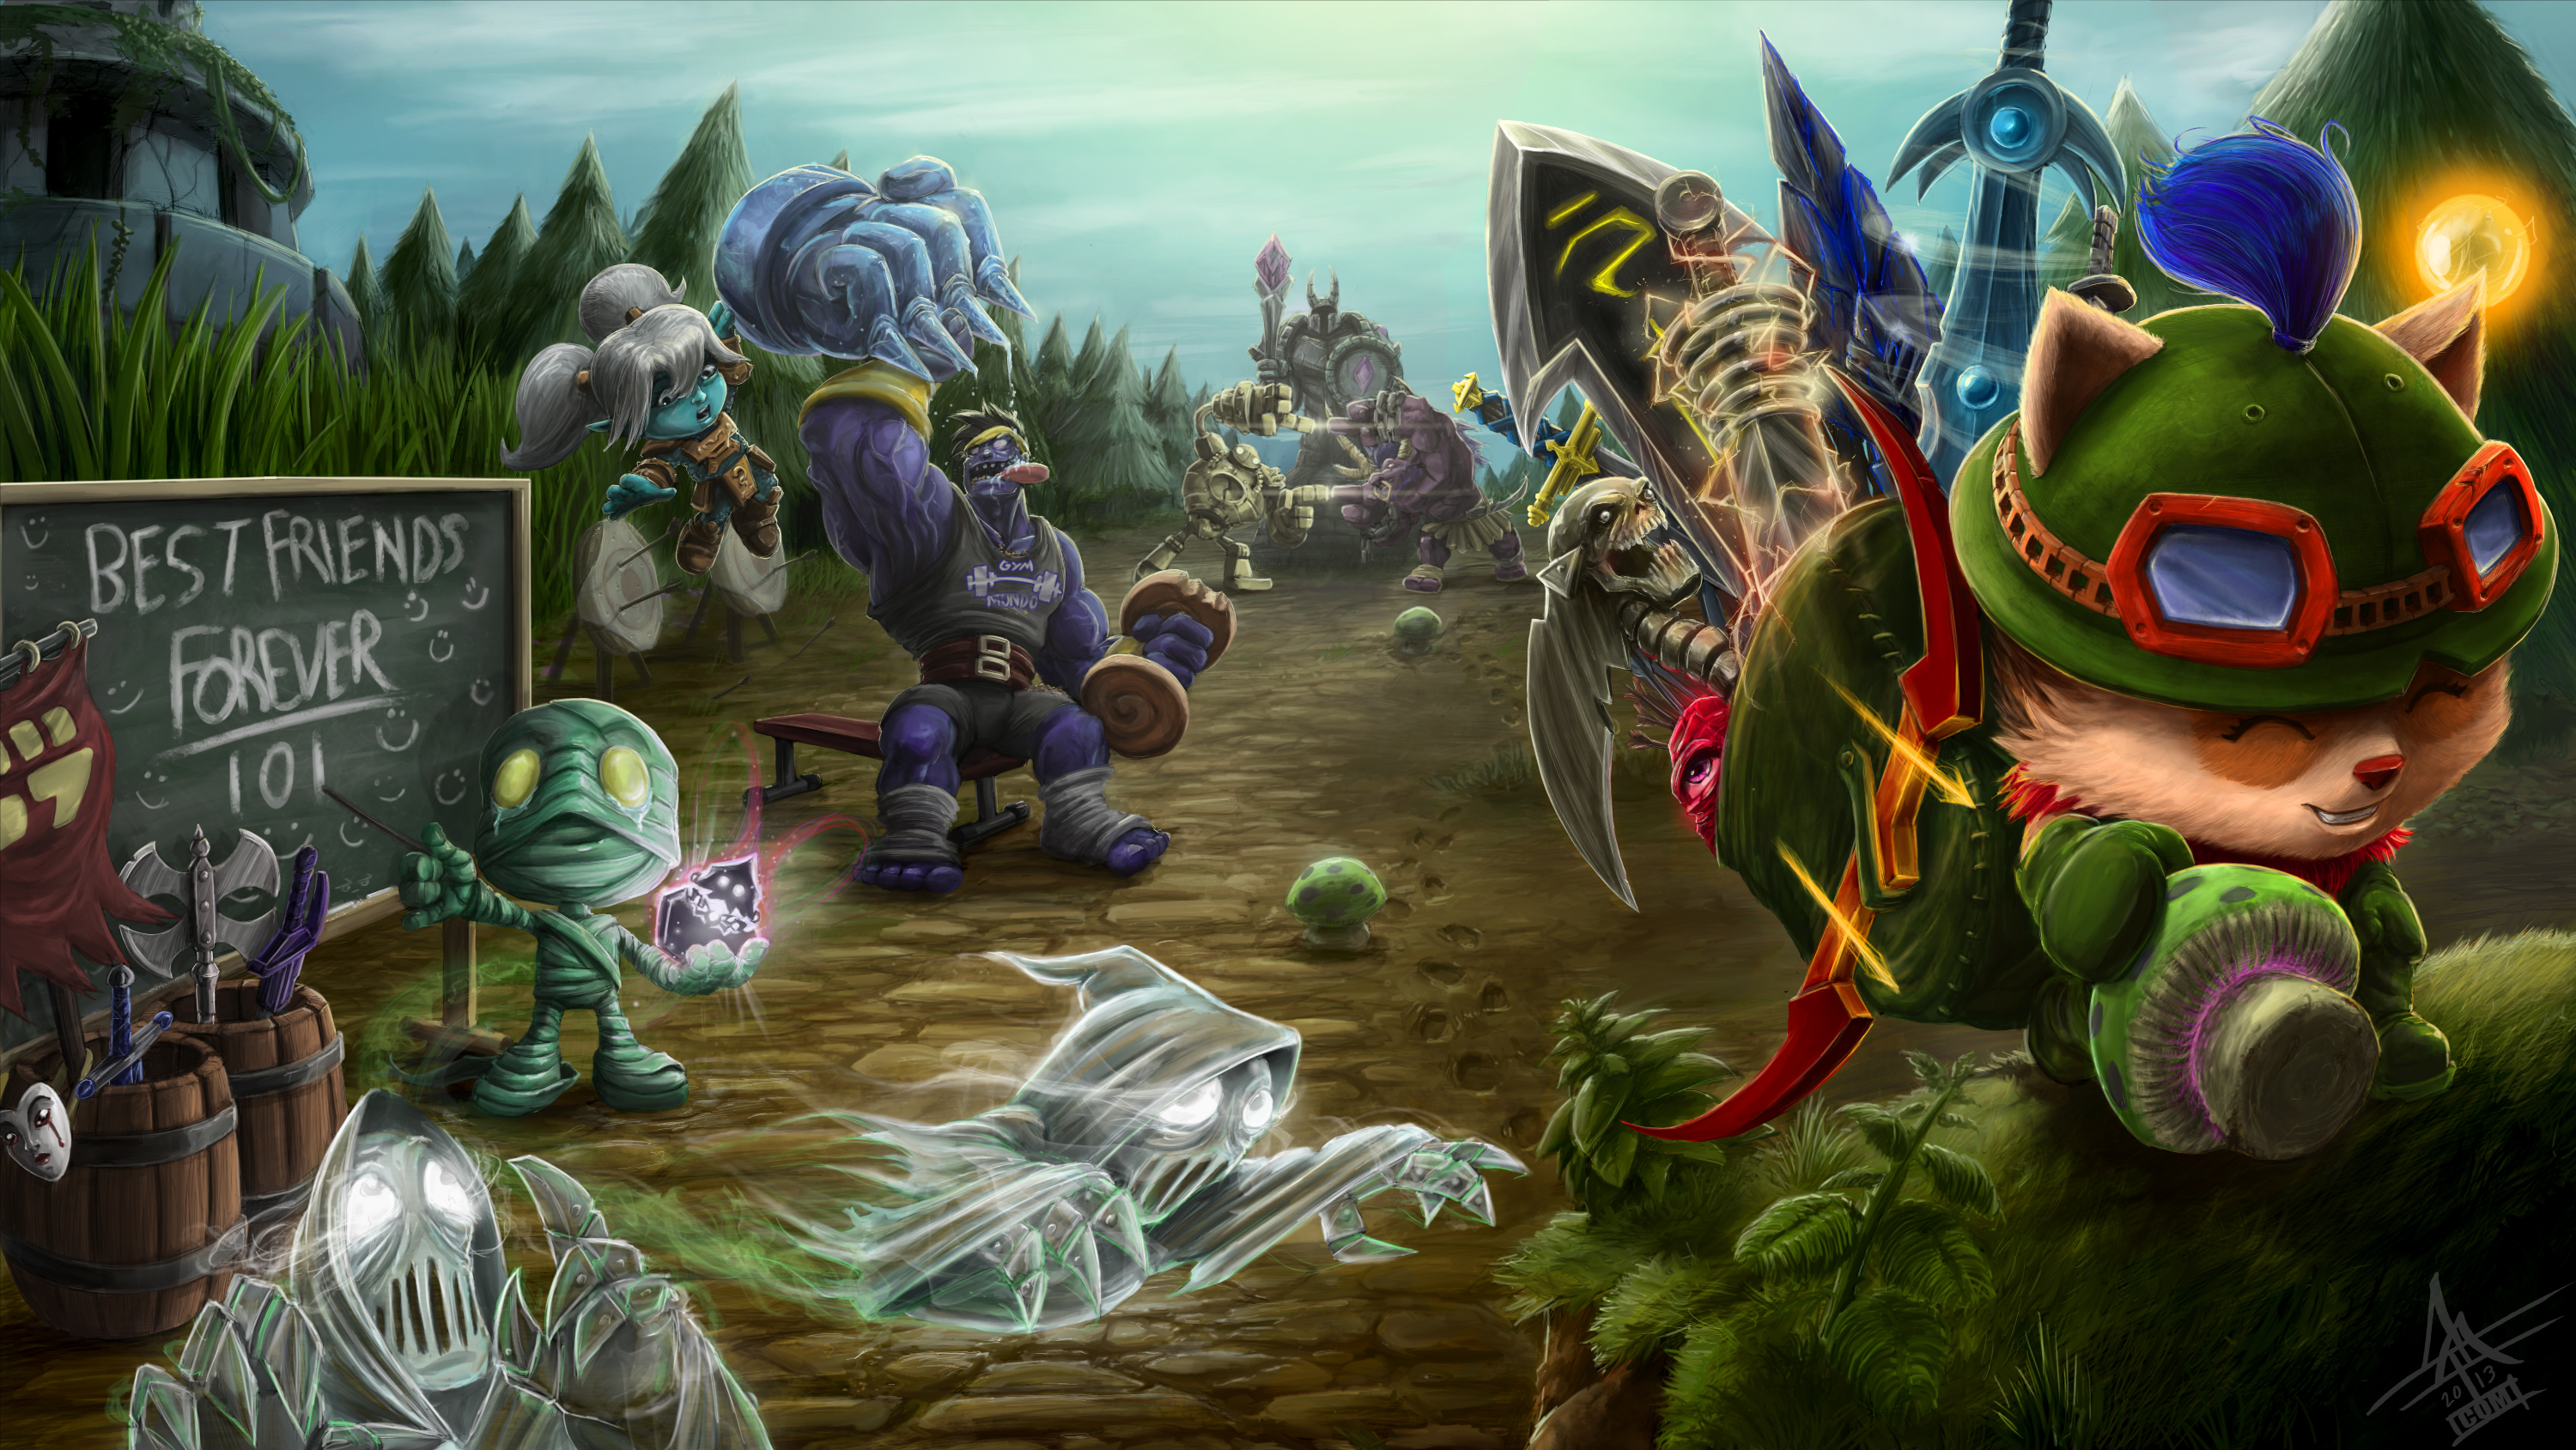 Pics photos pictures league of legends heroes wallpaper hd 1080p jpg - League Of Legends Wallpapers Hd Hd Photo Wallpaper Collection Hd